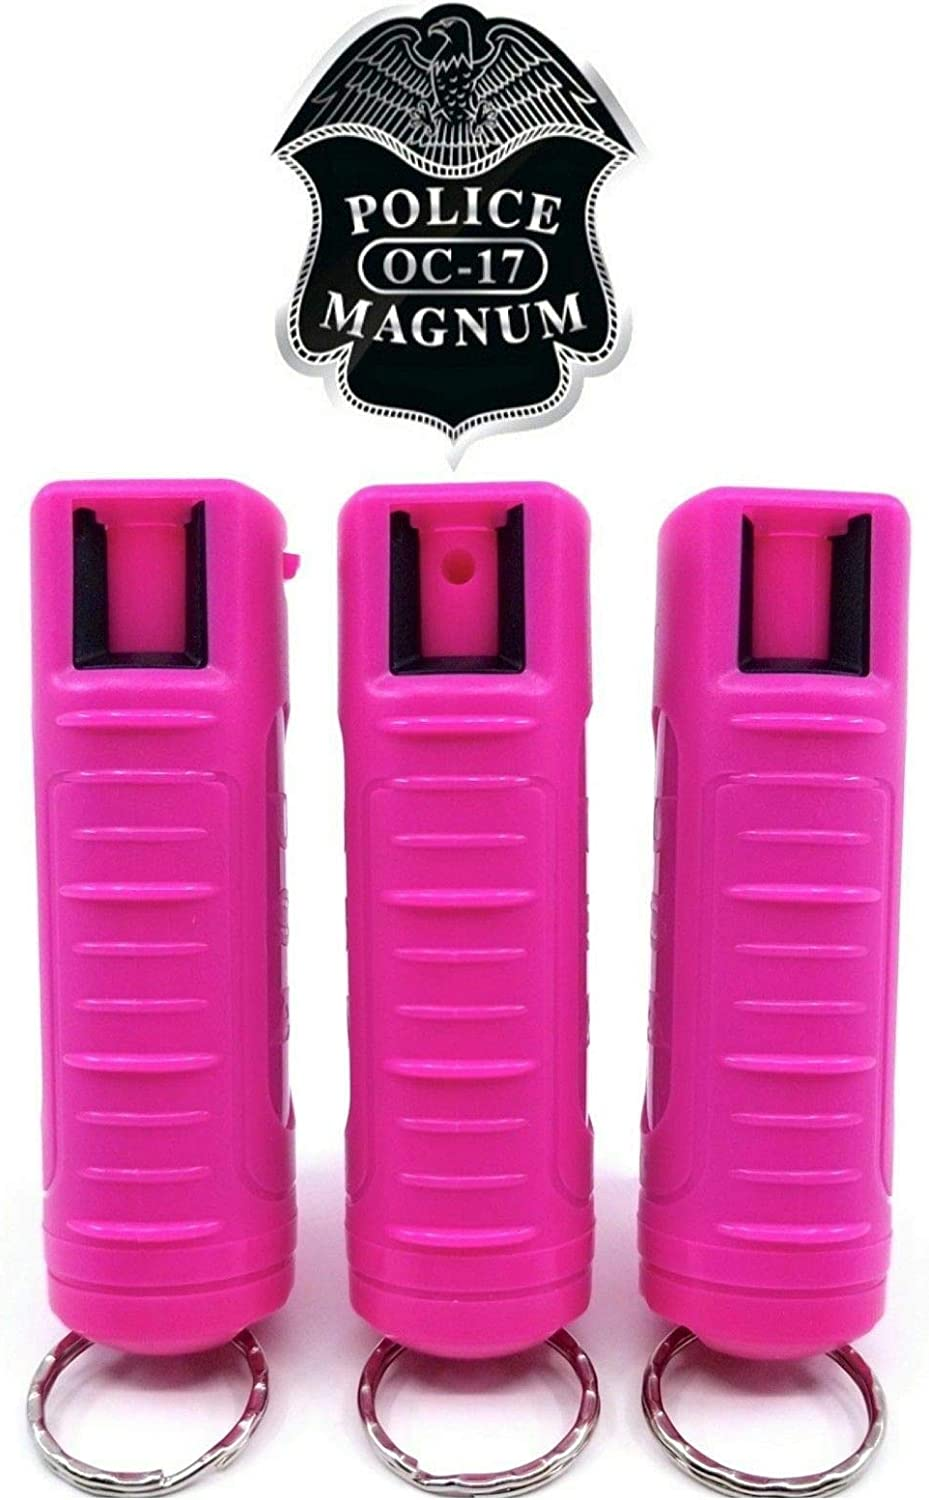 POLICE MAGNUM OC-17 3 Pack 1/2oz Pepper Spray Keychain For Women Self Defense- HOT PINK Molded Keychain